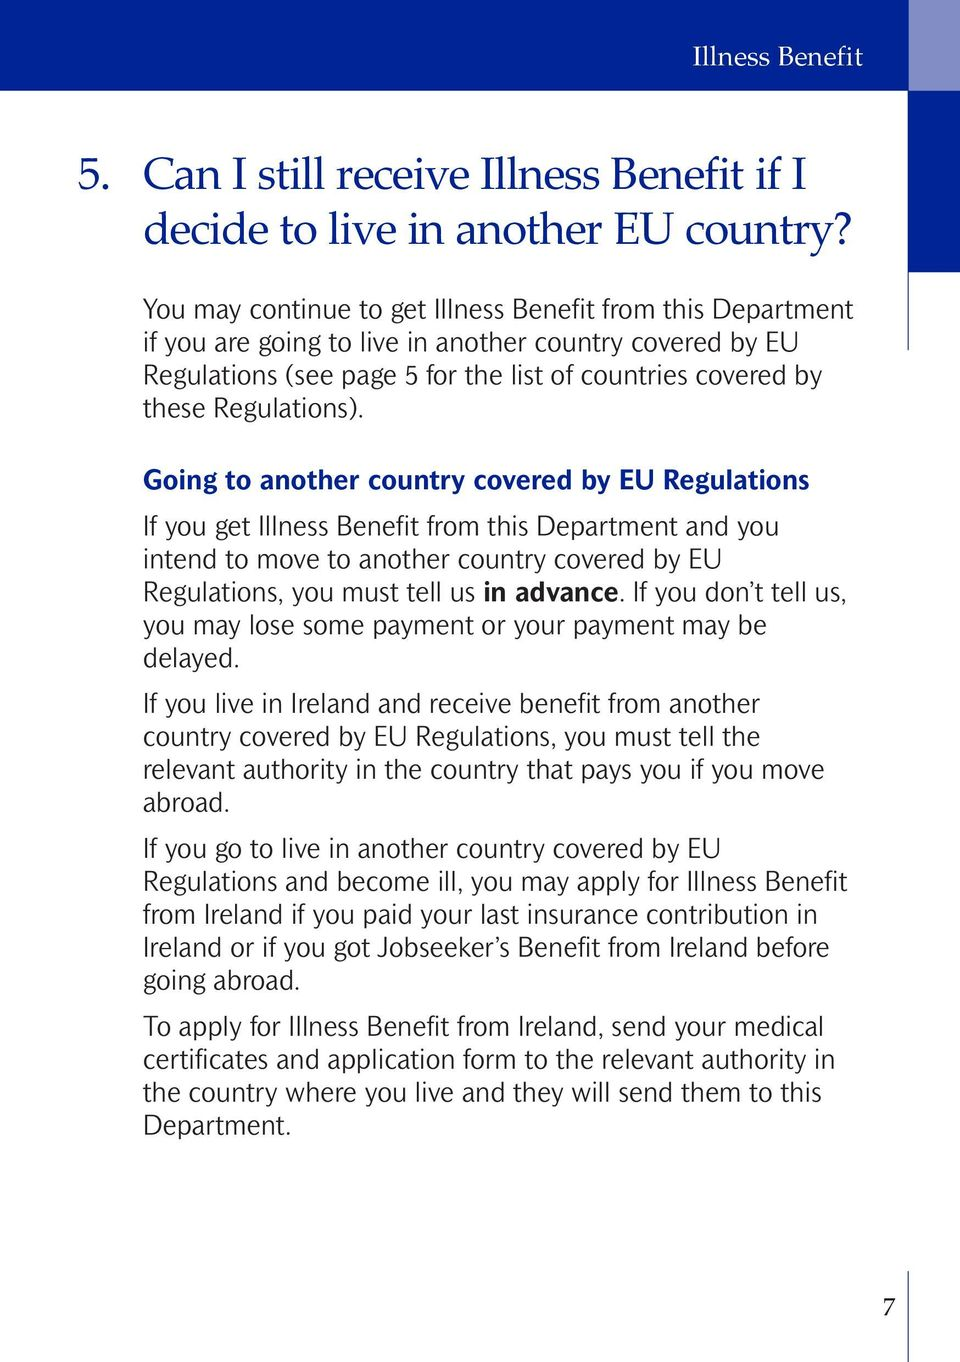 Going to another country covered by EU Regulations If you get Illness Benefit from this Department and you intend to move to another country covered by EU Regulations, you must tell us in advance.